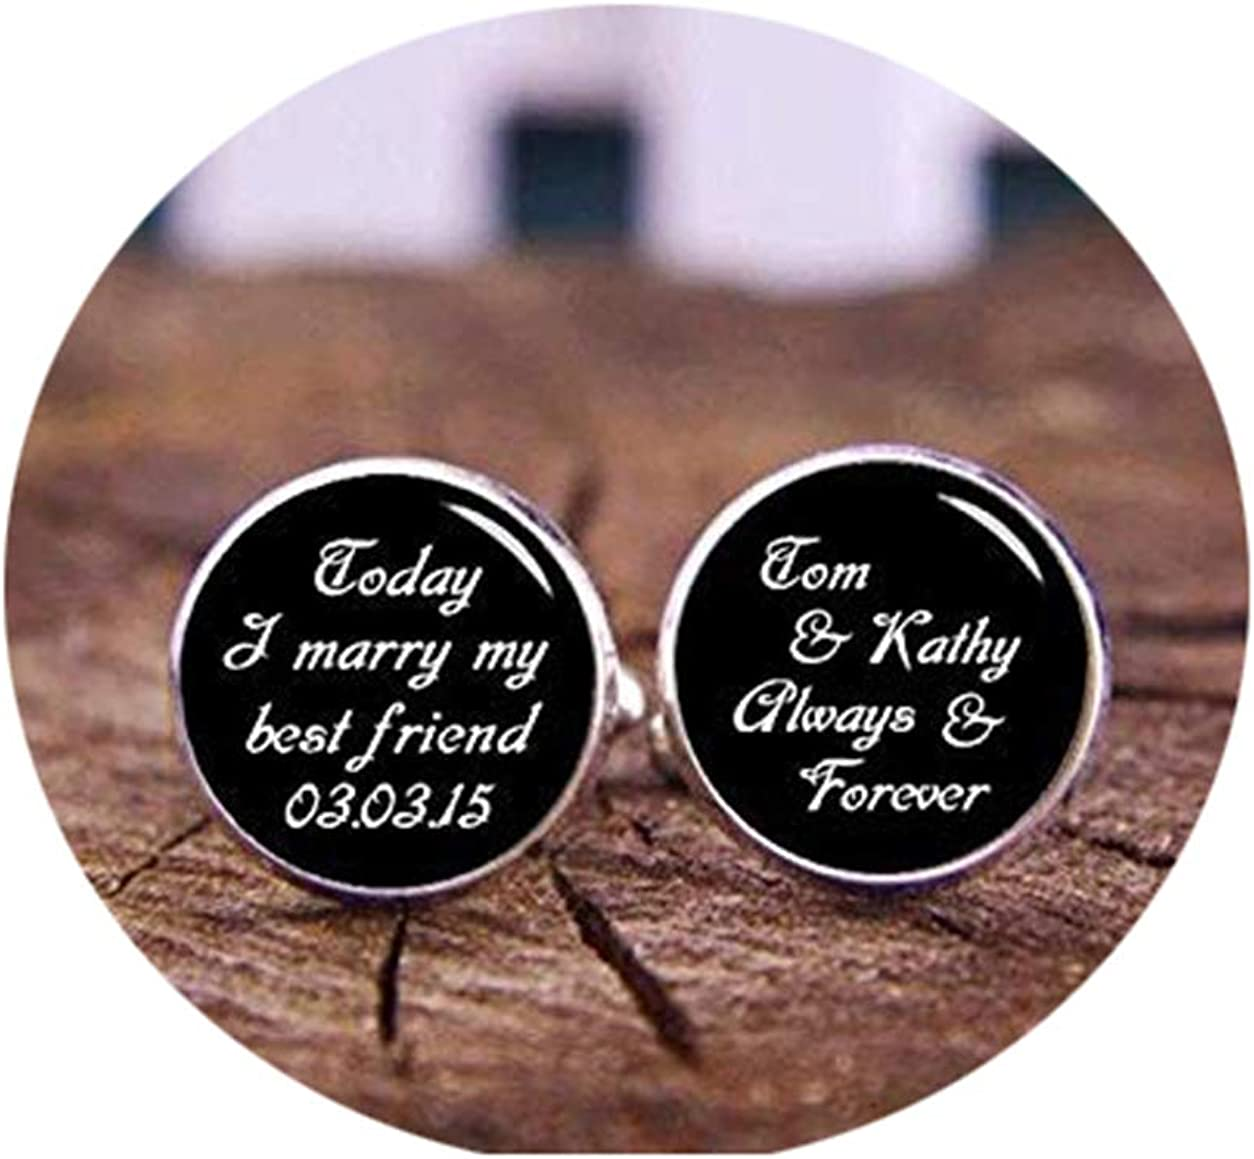 Death Devil Custom Cuff Links,Today I Marry My Best Friend, Always and Forever Cufflinks, Personalized Wedding Cufflinks, Handmade Cuff Link for Grooms Fiance, Groom Gift,Gift of Love